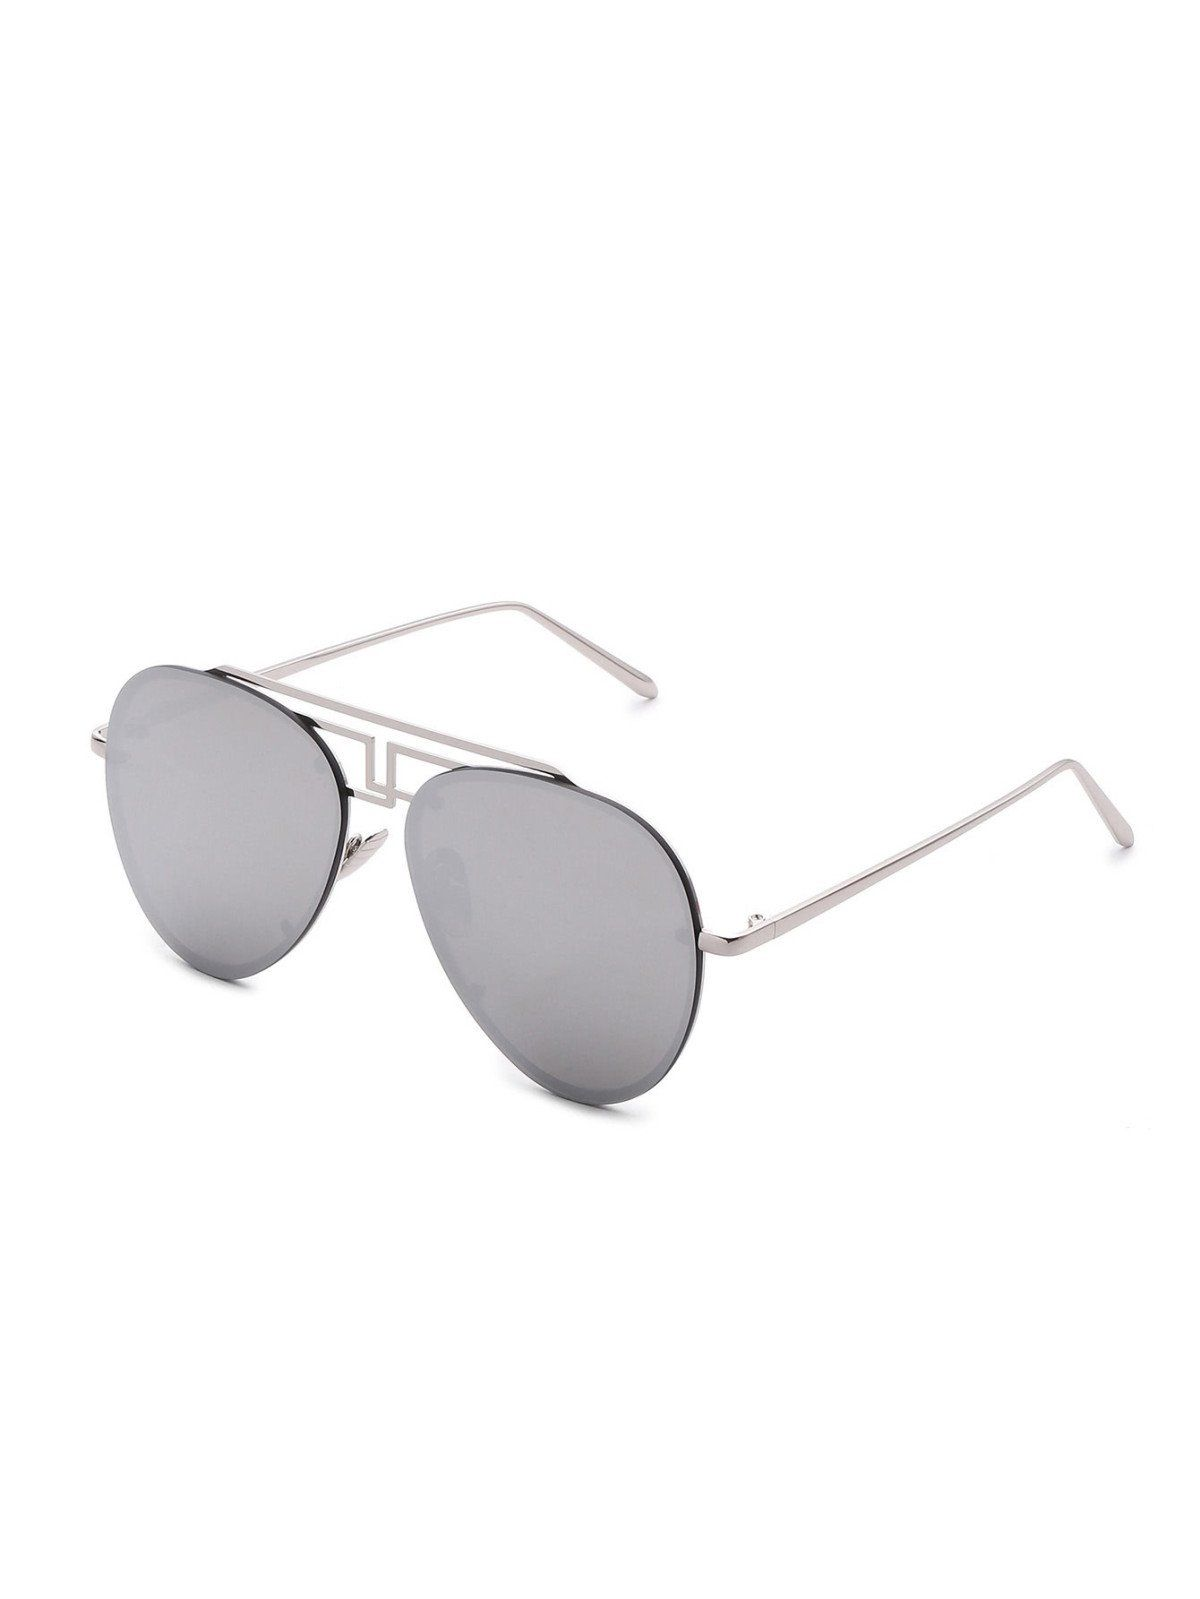 Sunglasses By BORNTOWEAR. Asymmetrical Top Bar Rimless Aviator Sunglasses